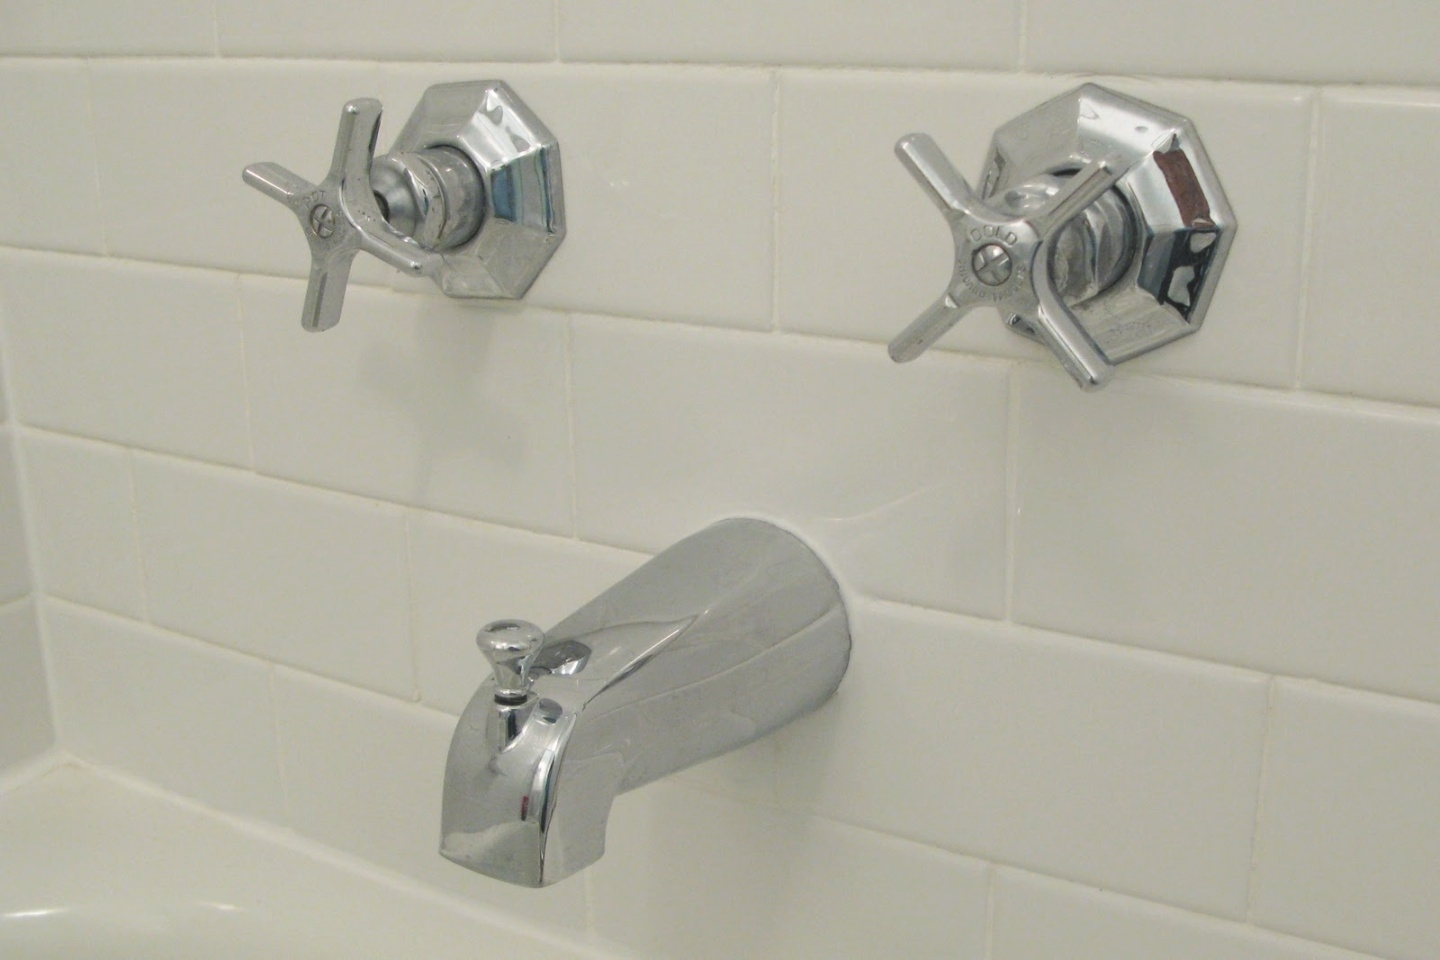 old style bathroom faucets mobroi throughout measurements 1440 x 960